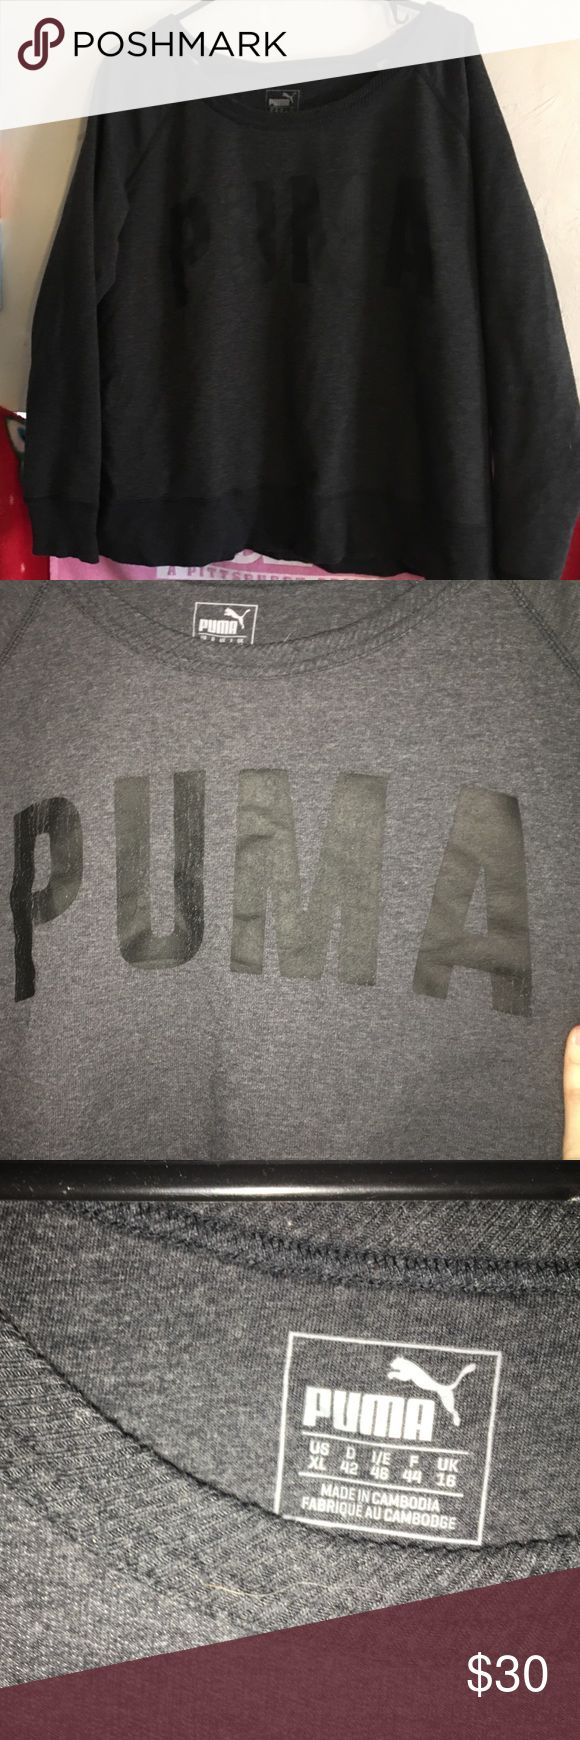 Puma sweatshirt Brand new without tag. I tried it on and was every excited until my boobs decided an XL wasn't going to work for this type of sweat shirt Puma Tops Sweatshirts & Hoodies